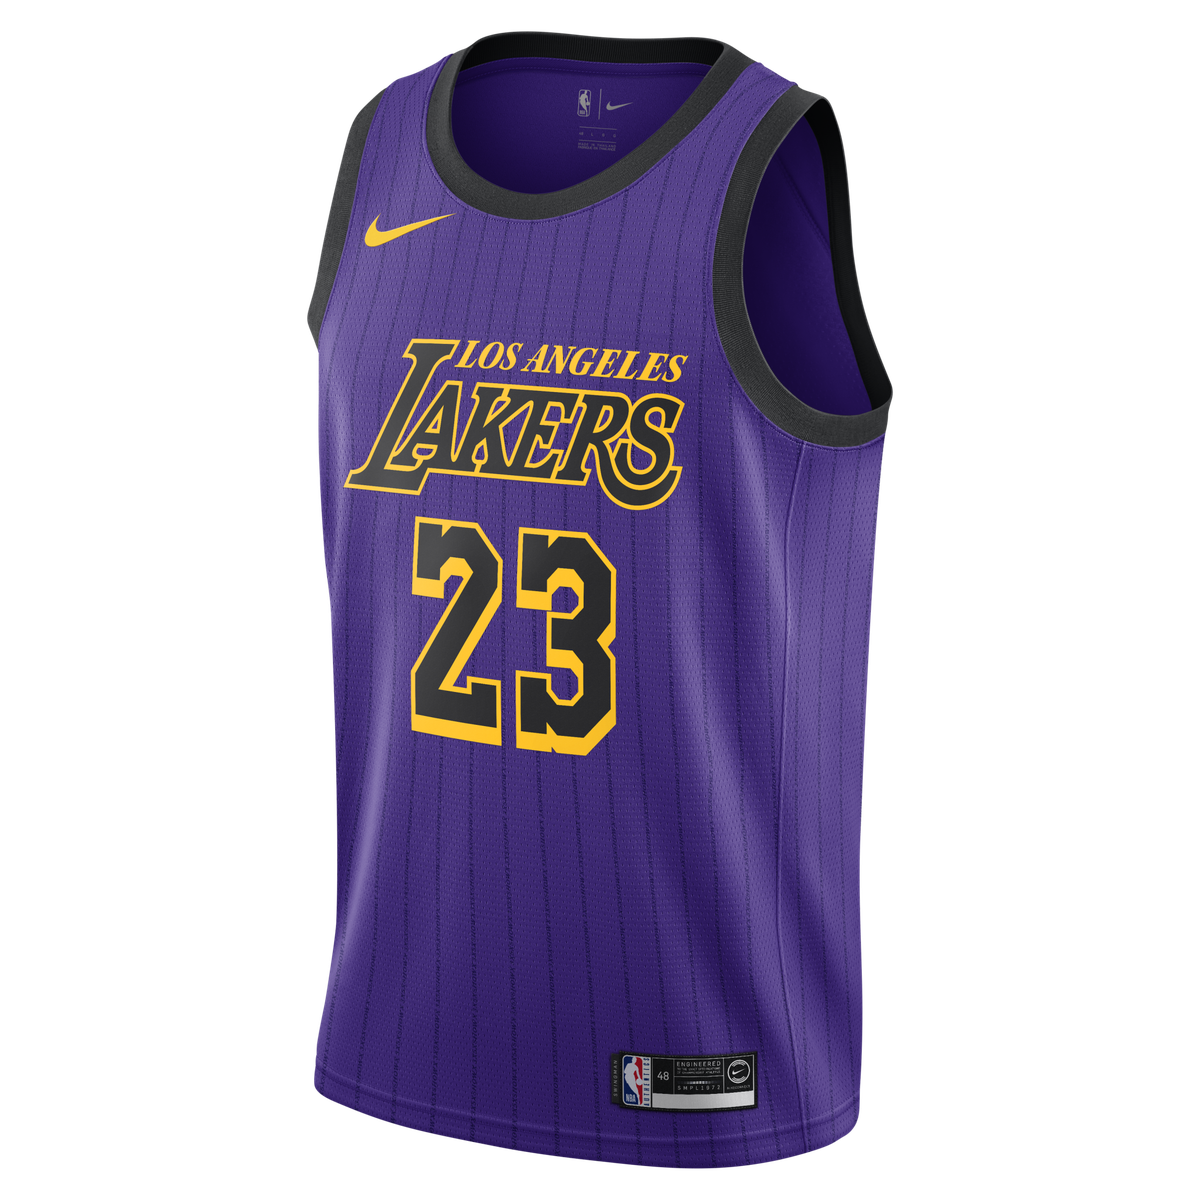 LeBron James Nike Swingman Jersey - City Edition for  109.99 Fanatics 34d7f0d2d